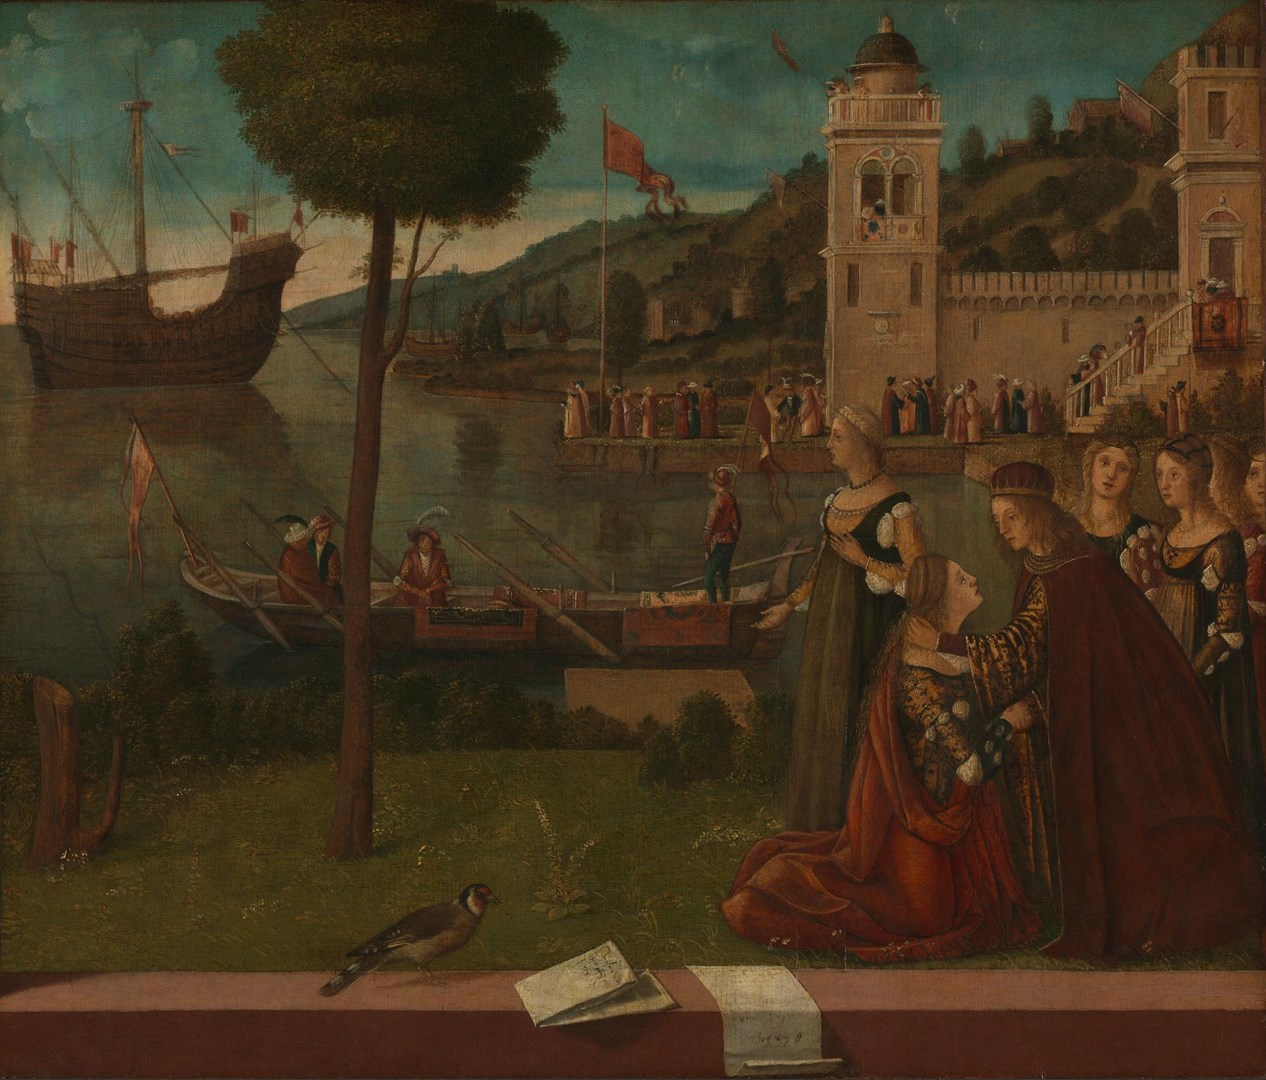 The Departure of Ceyx by Vittore Carpaccio